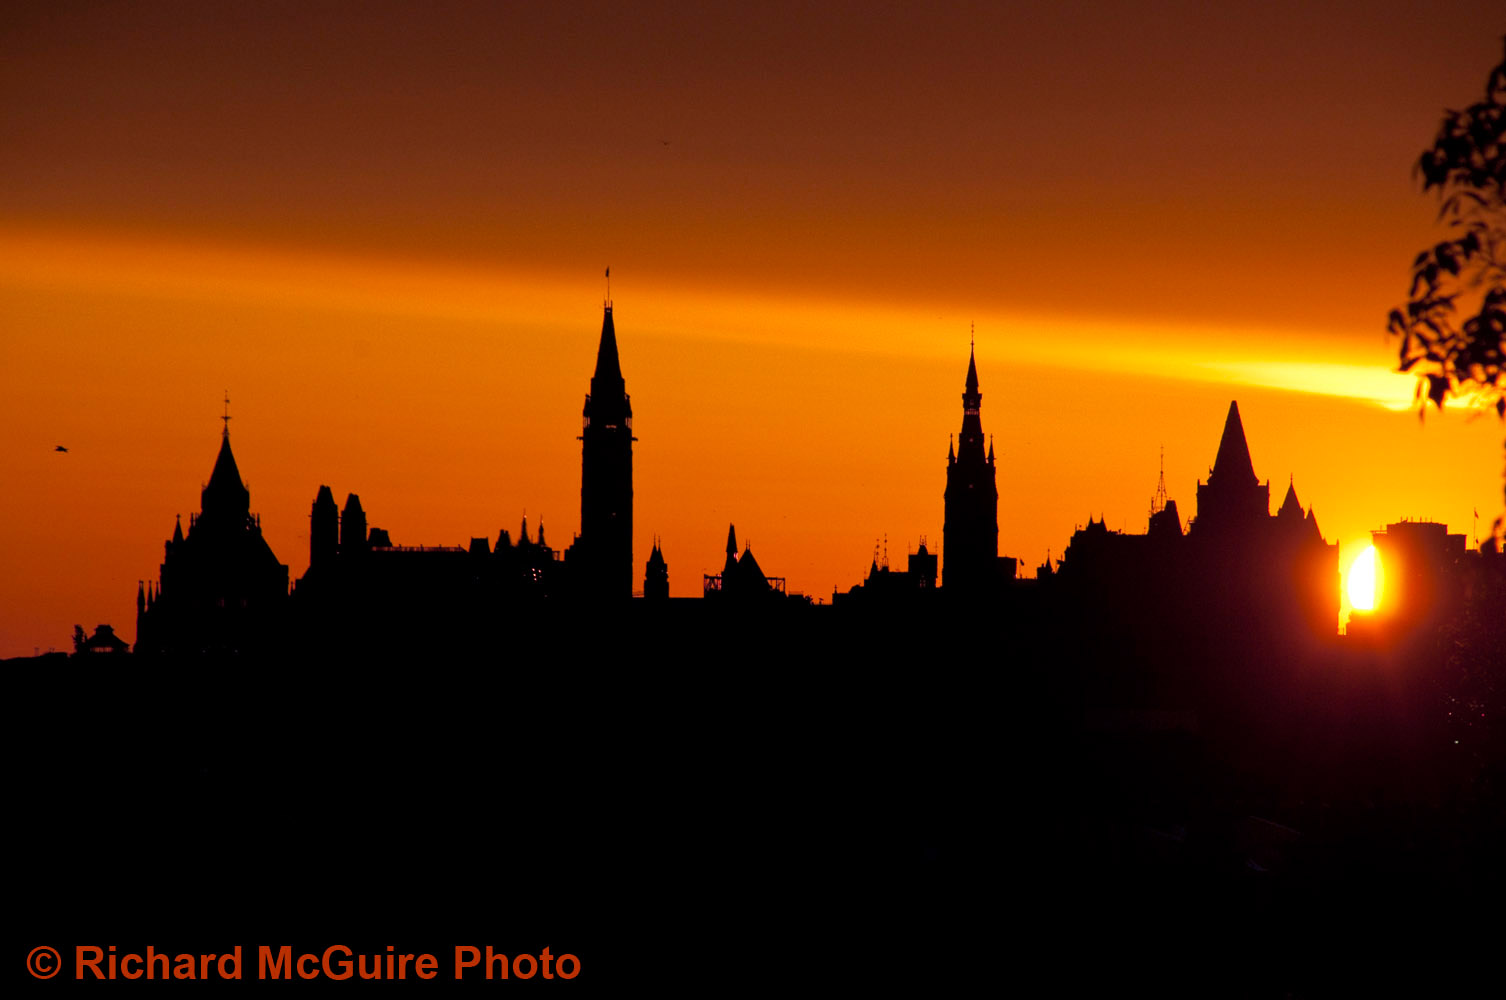 Canada's Parliament buildings at sunrise